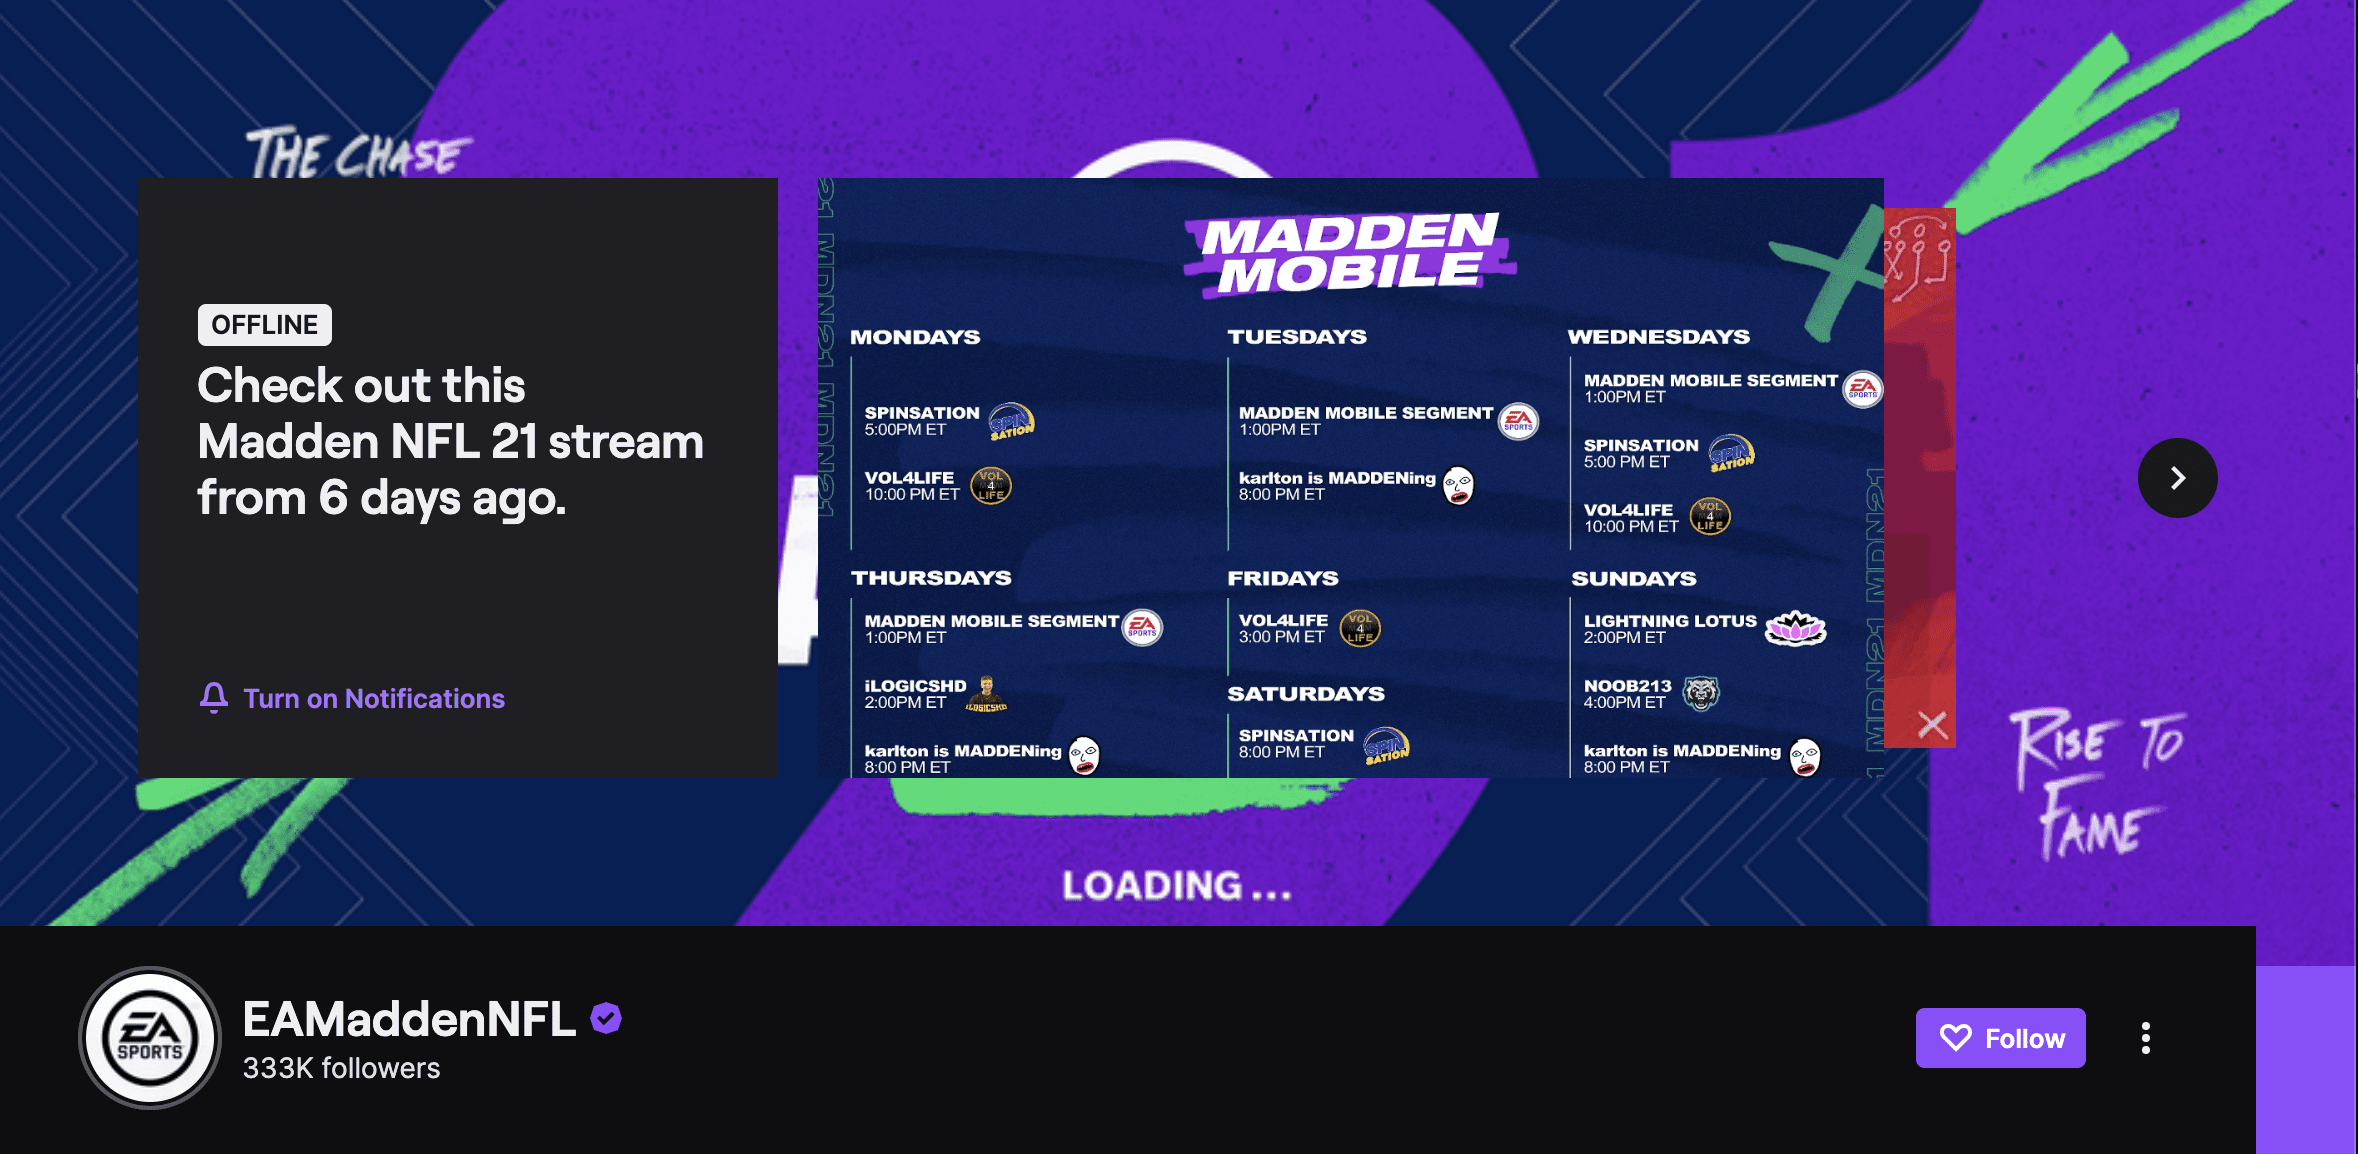 twitch banner text example